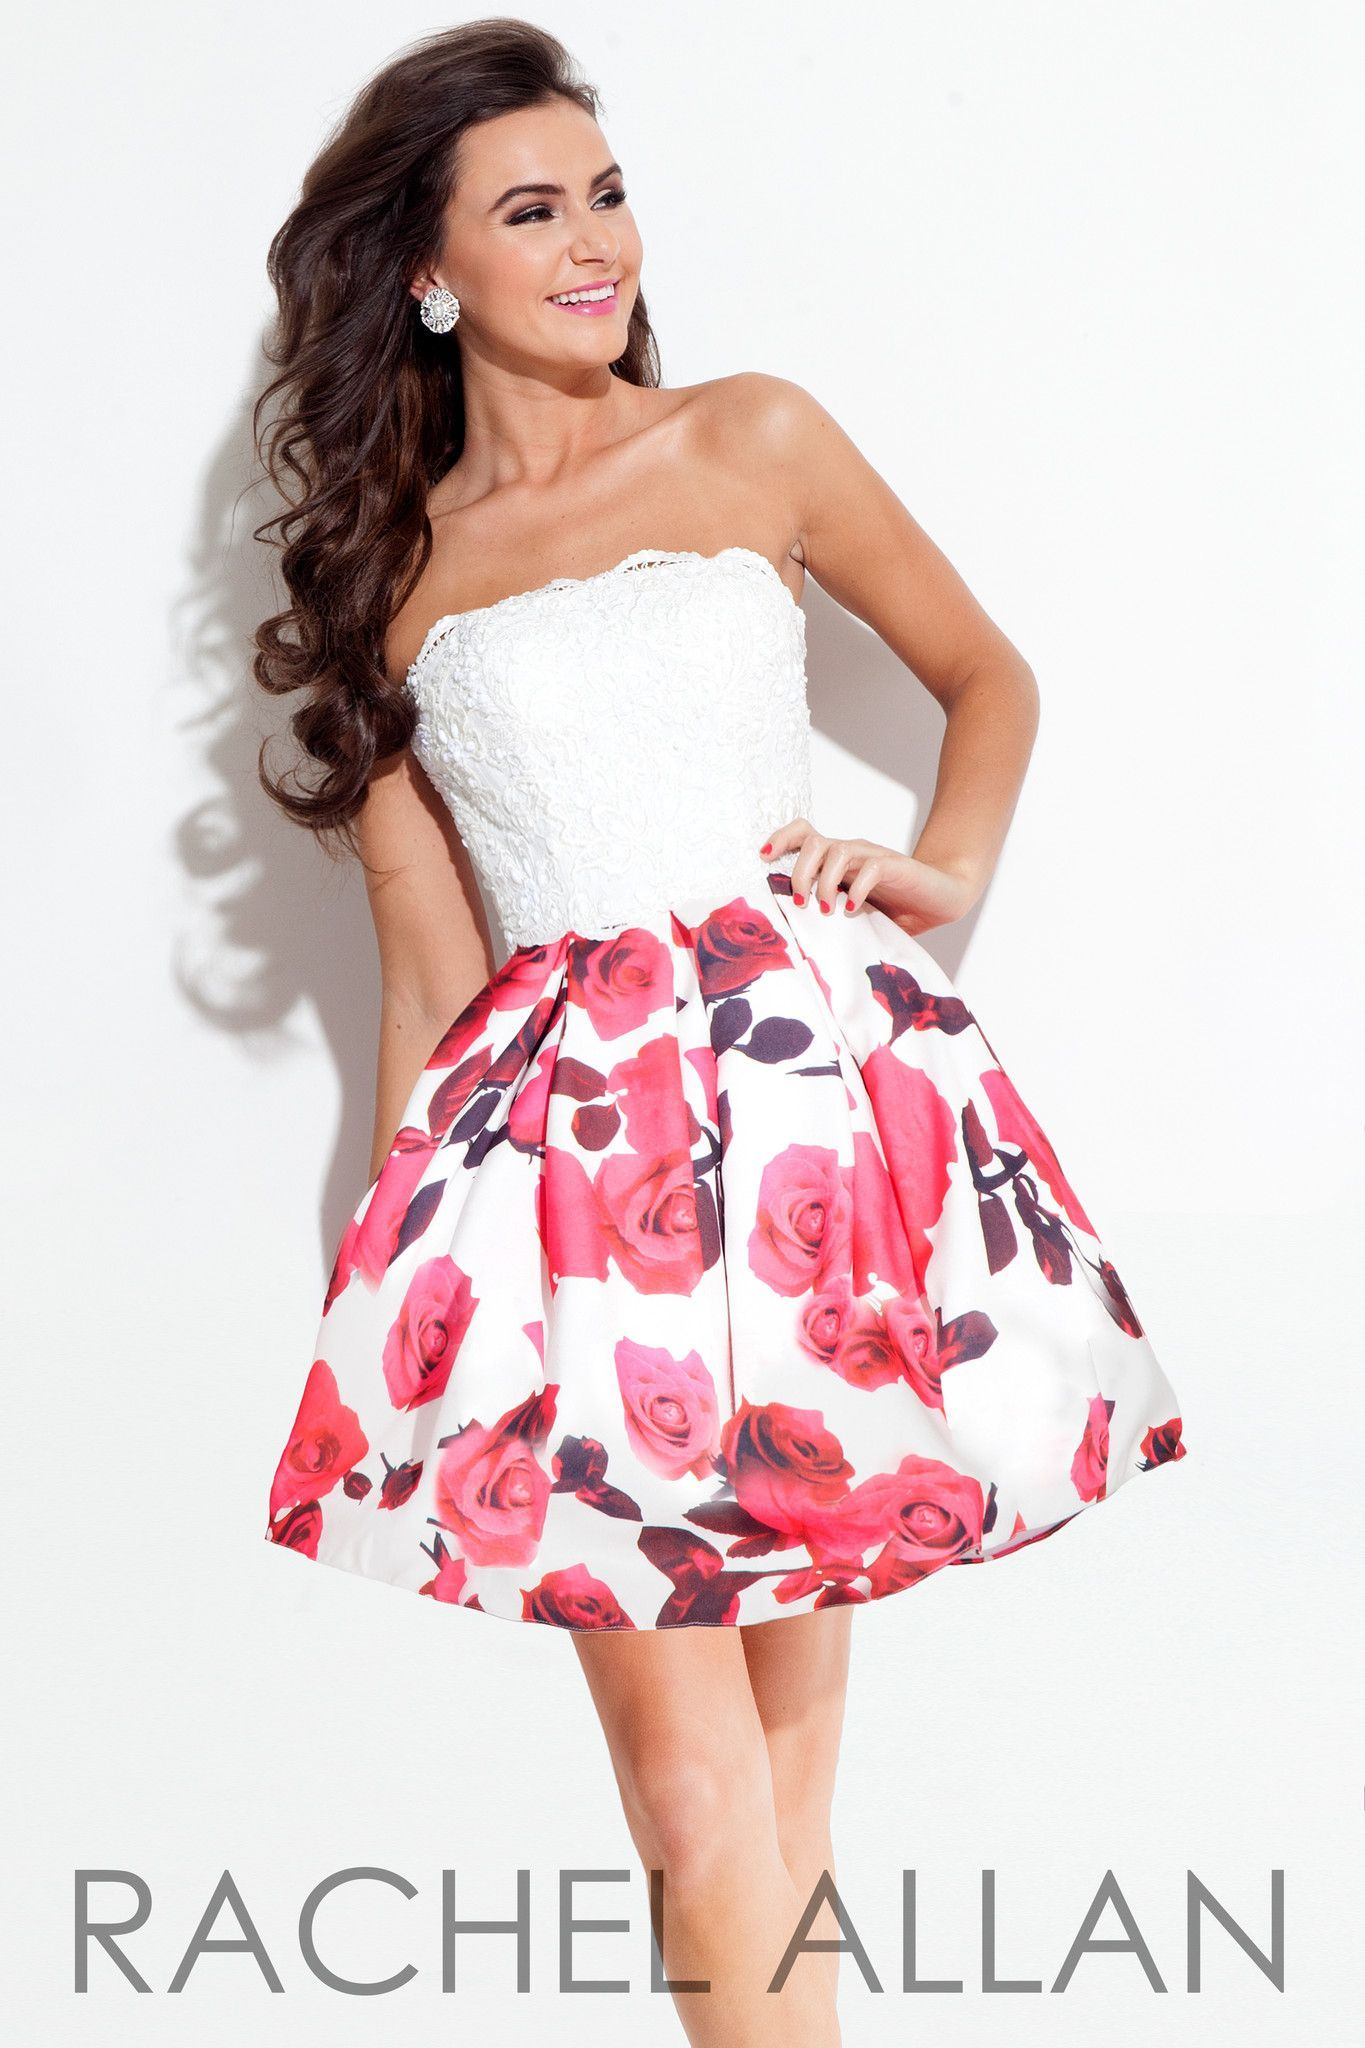 Pink dress hoco  This dress has a strapless lace top with a floral print skirt and